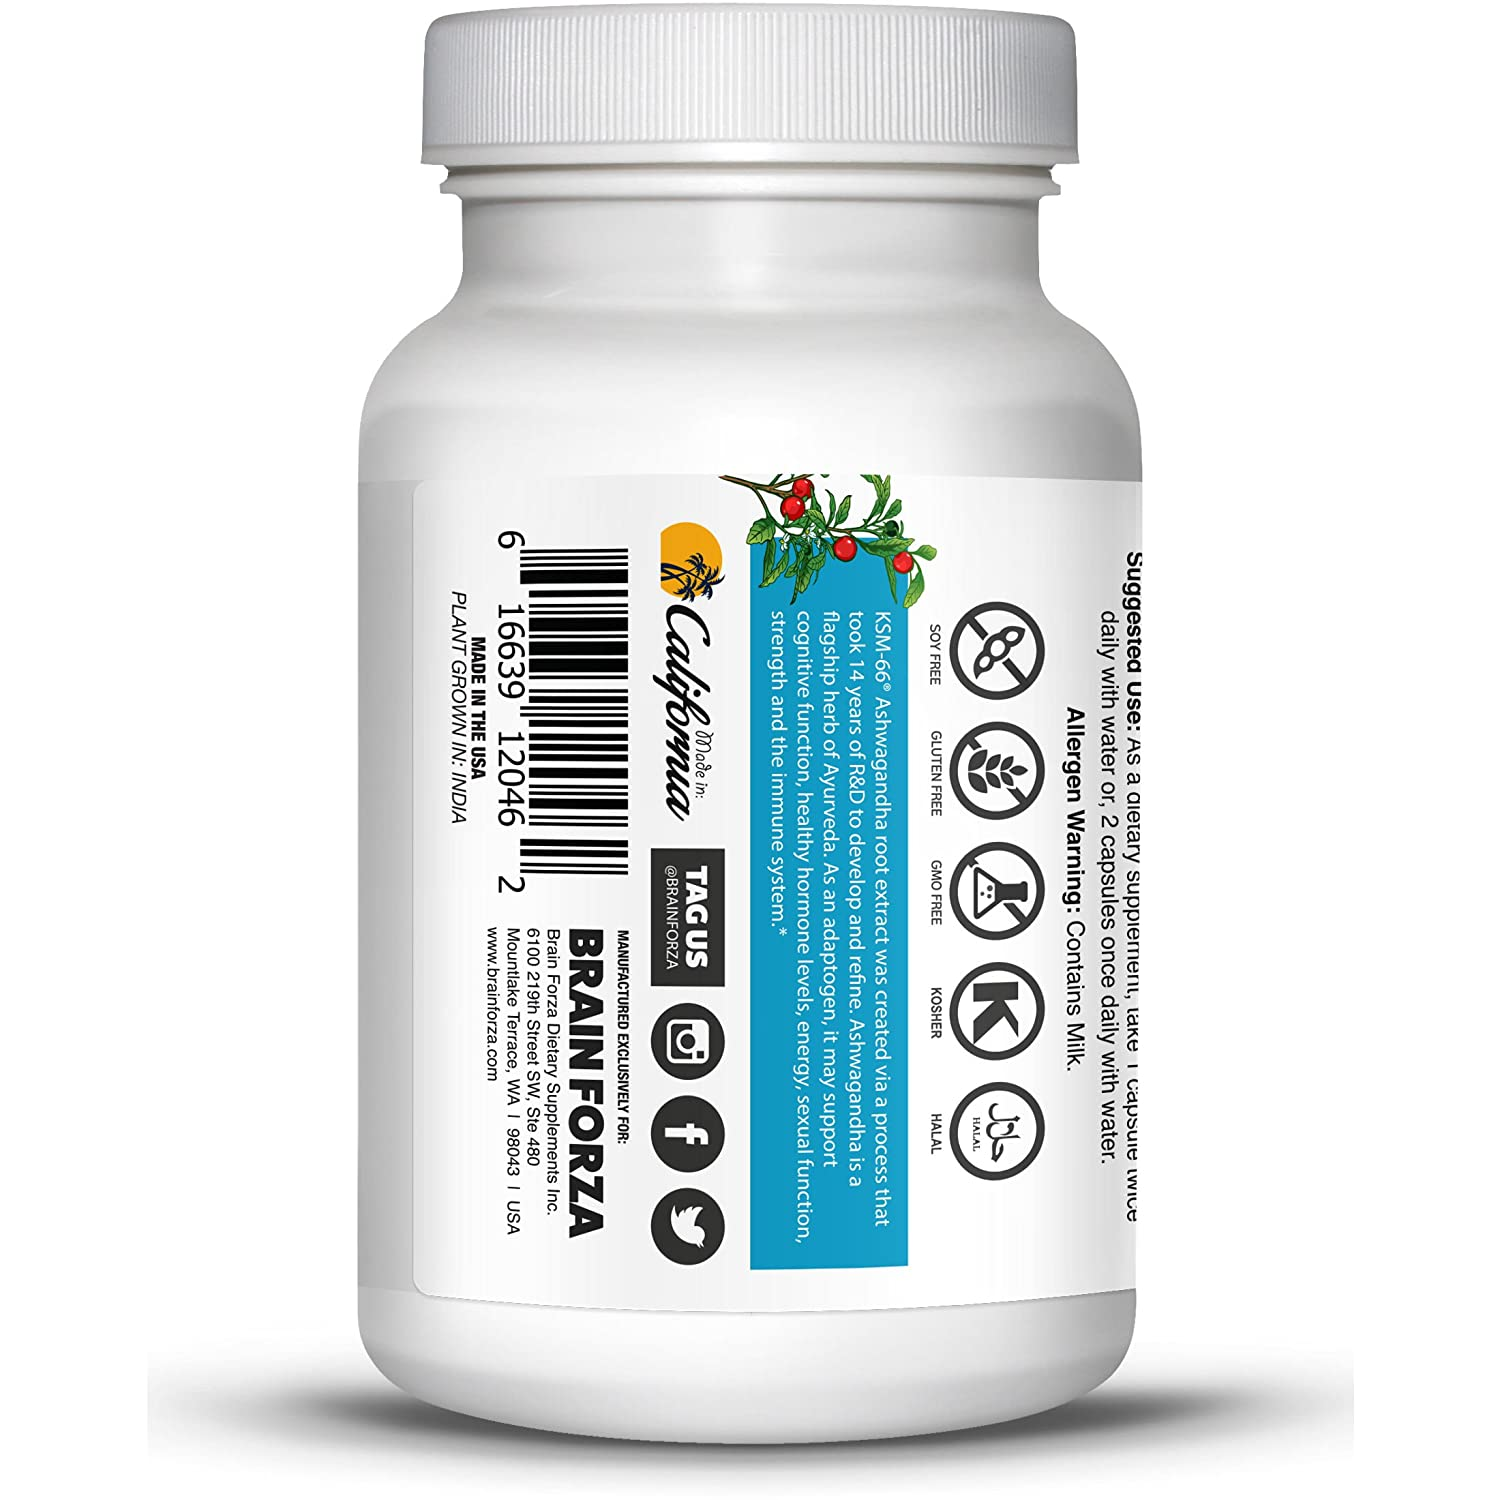 Brain Forza Organic KSM-66 Ashwagandha Root Extract 1,000mg/day for Brain,  Stress, Memory and